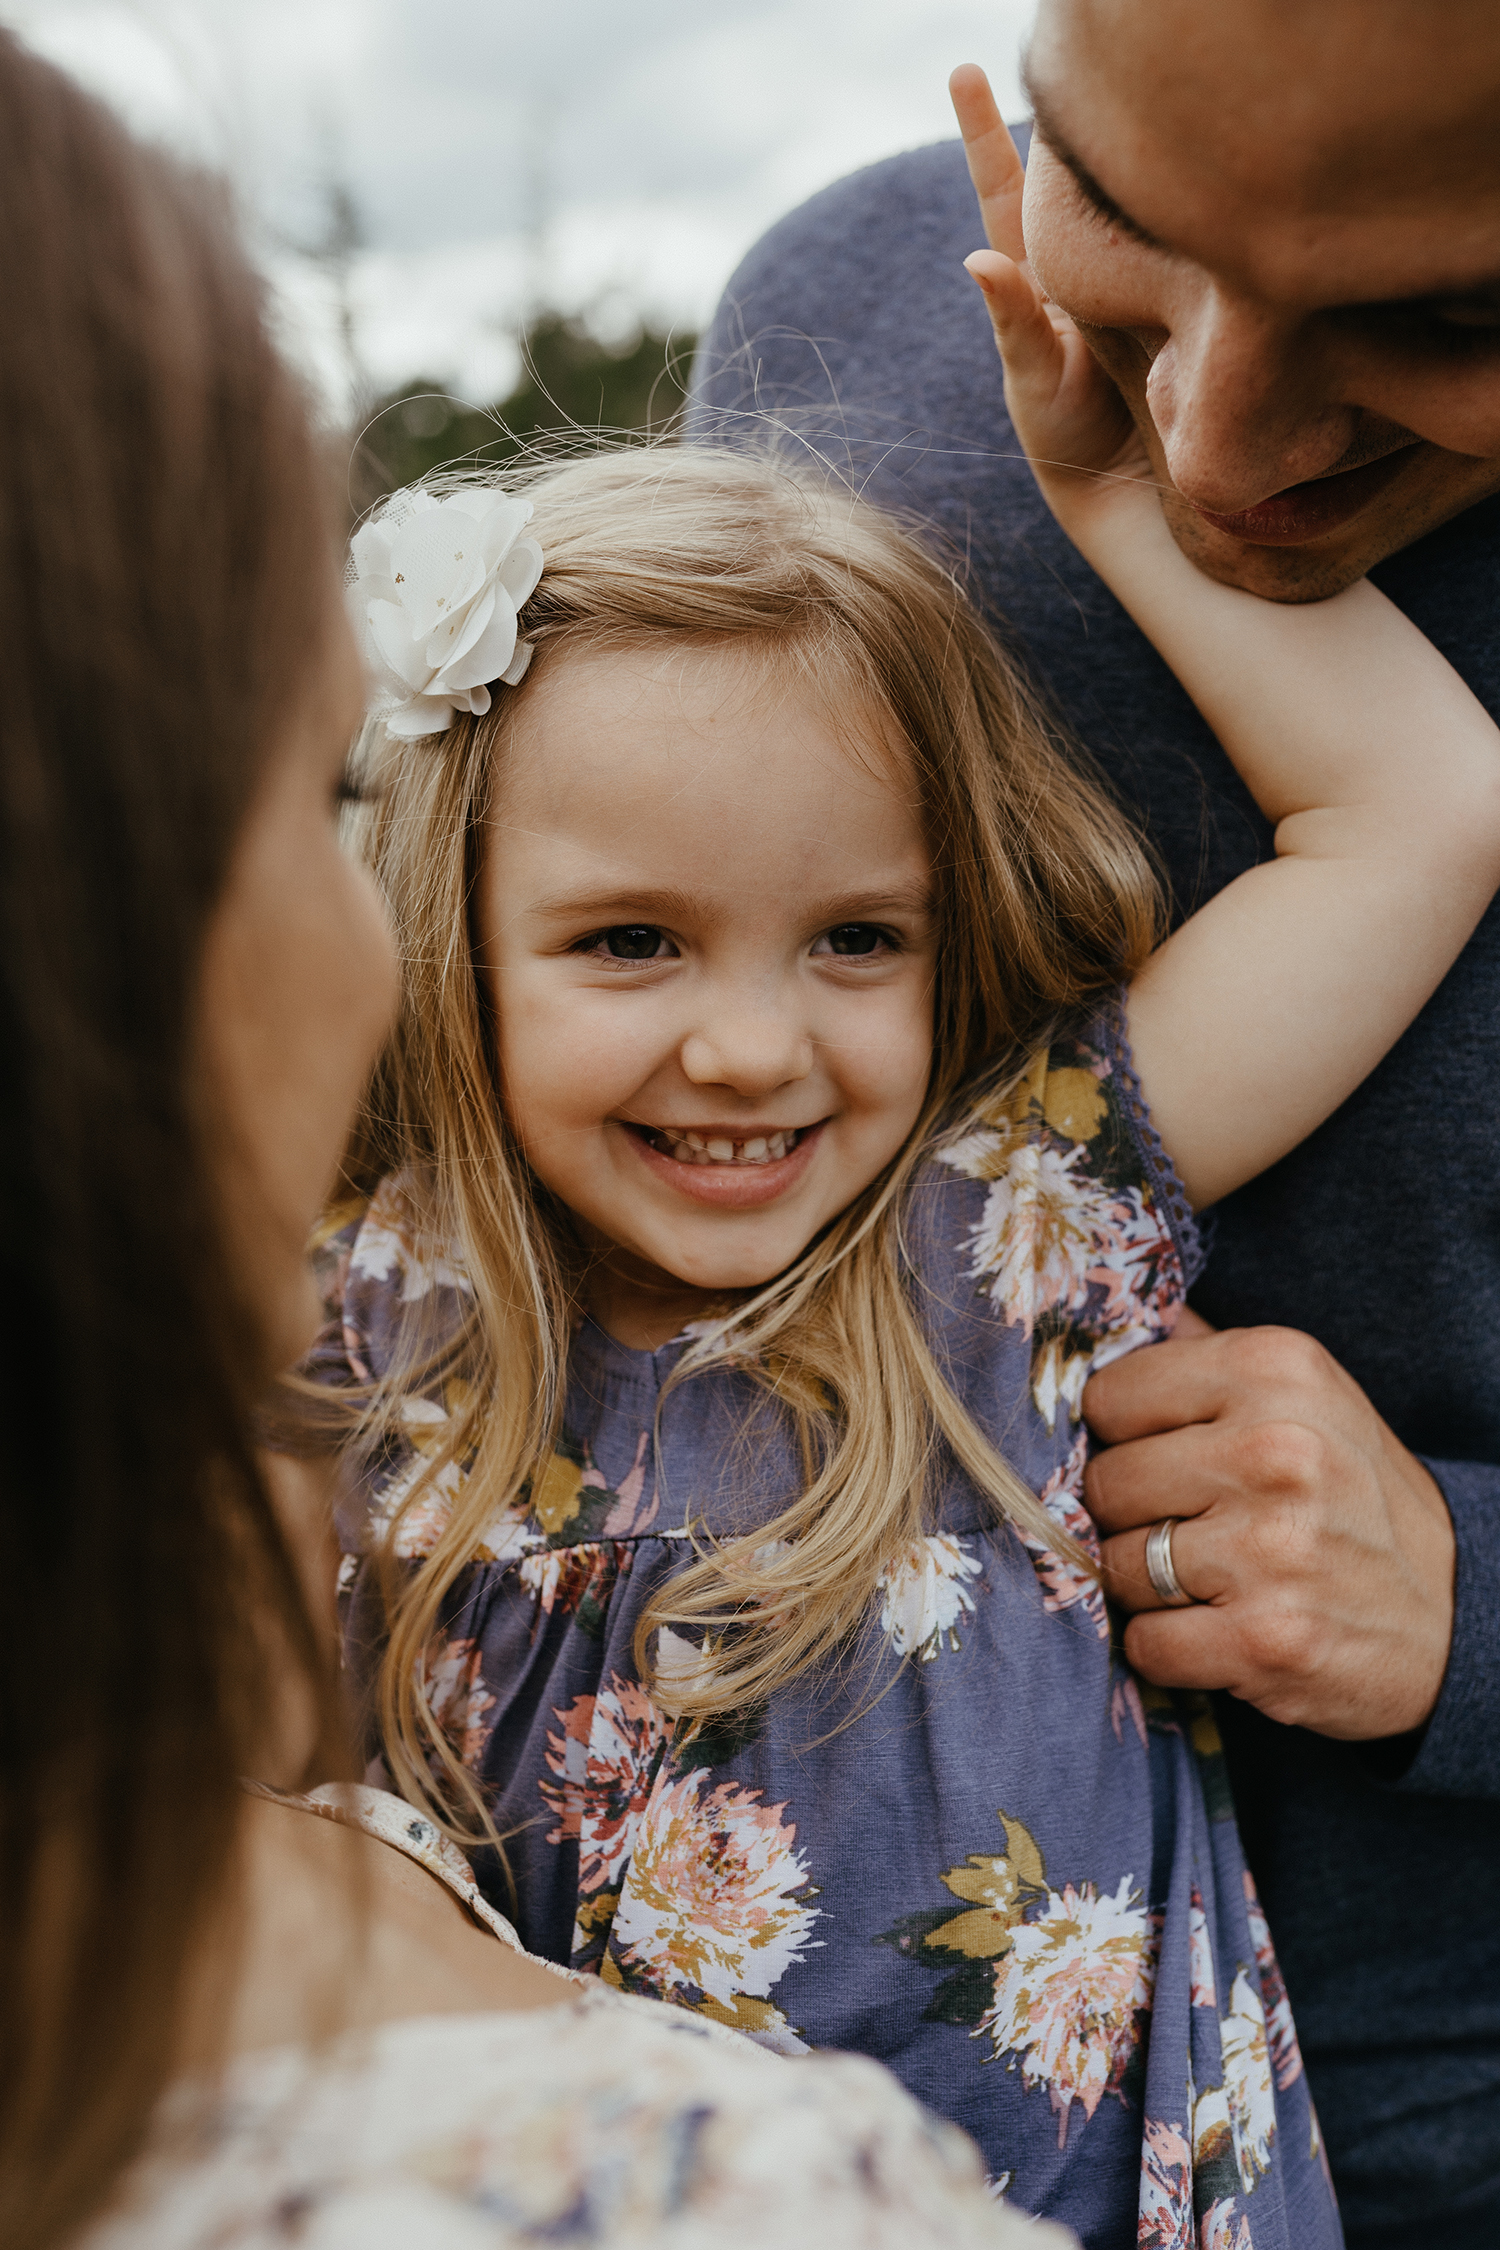 mueller-family-parents-holding-daughter-and-smiling-granger-iowa-raelyn-ramey-photography.jpg